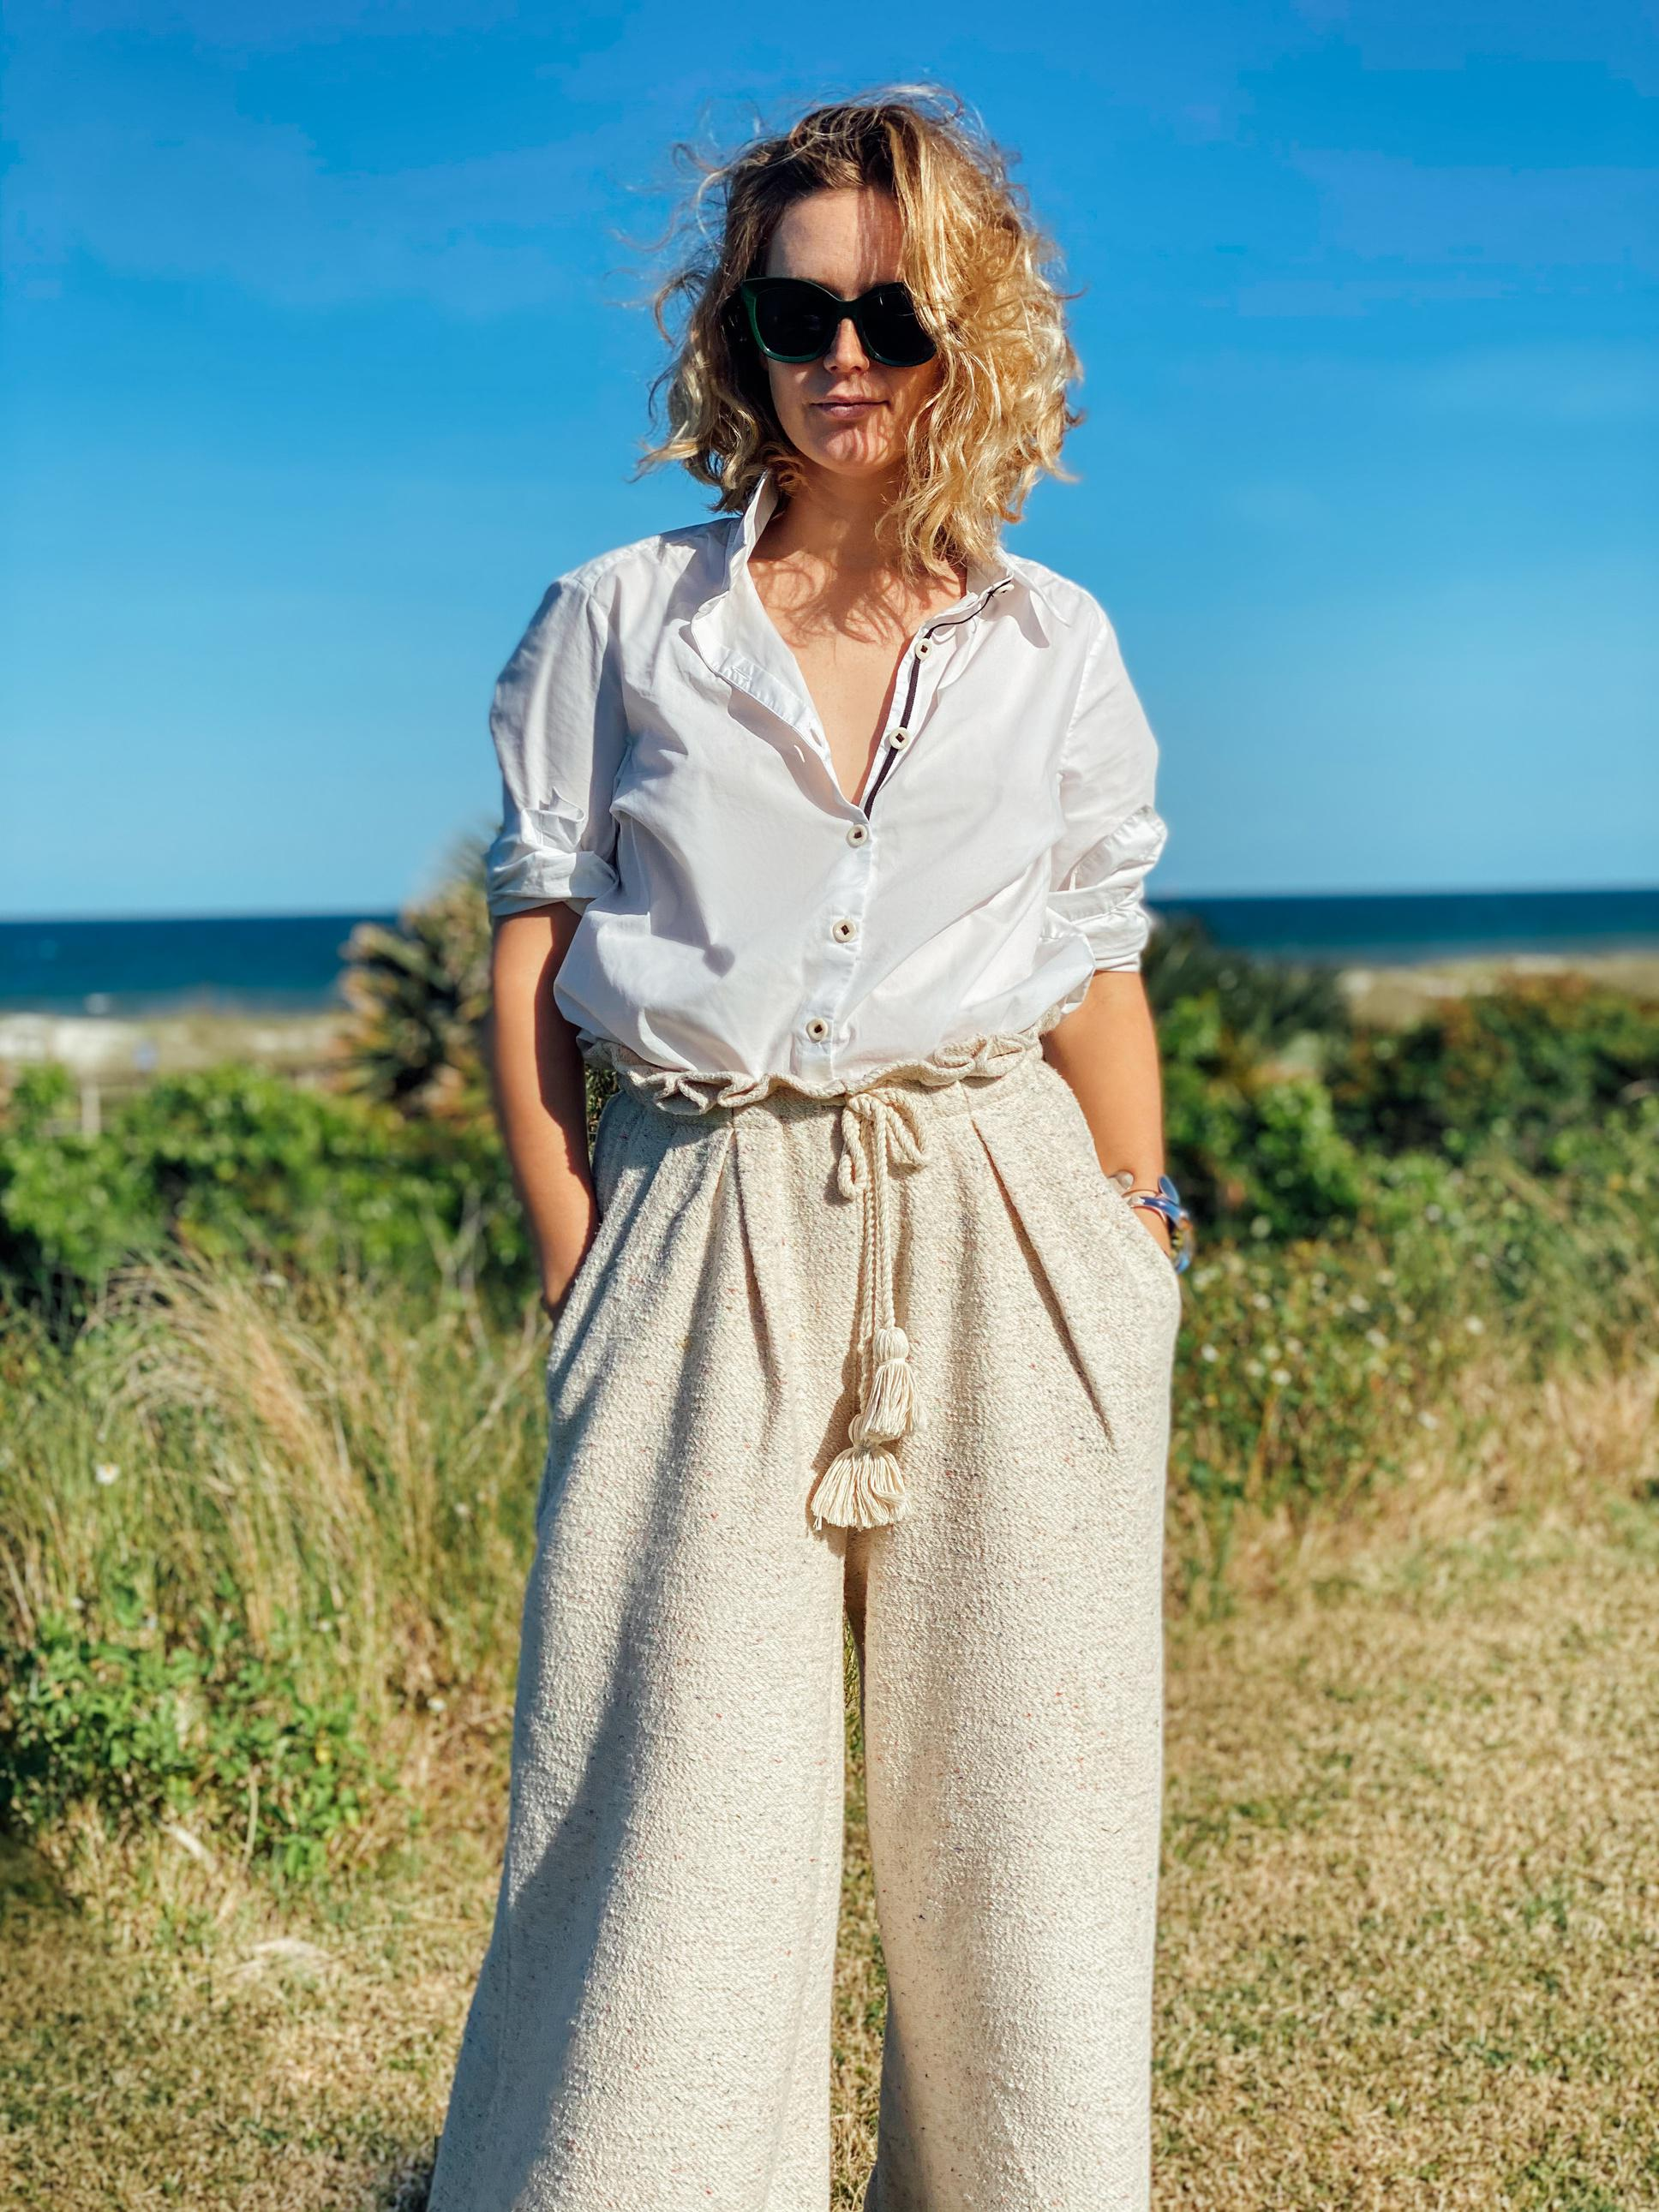 Brooklyn-based mother Abigail Lorick went from designing for Gossip Girl to designing for a larger swath of women who love the ocean.